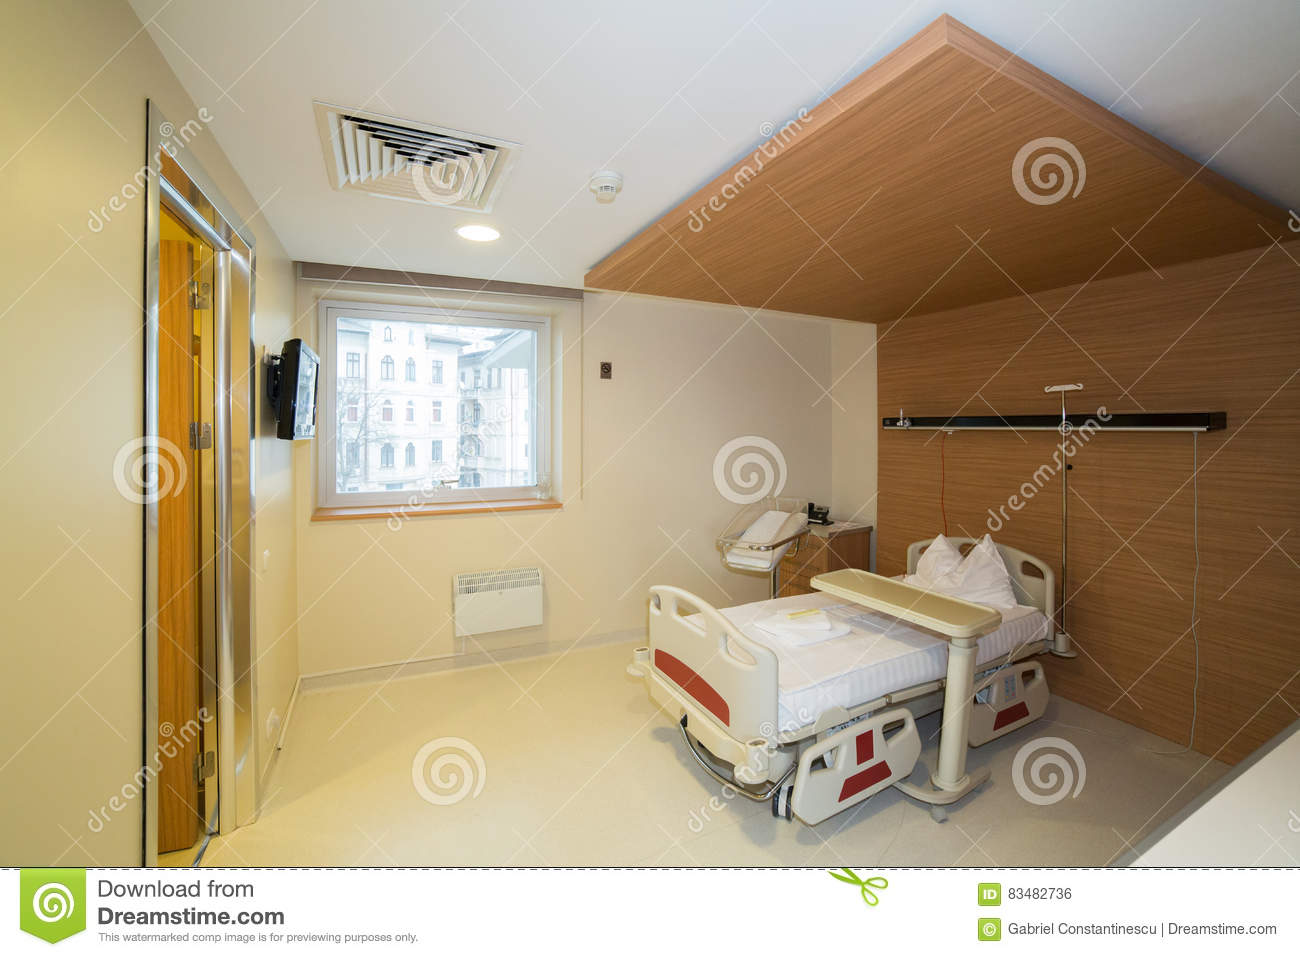 Private hospital room